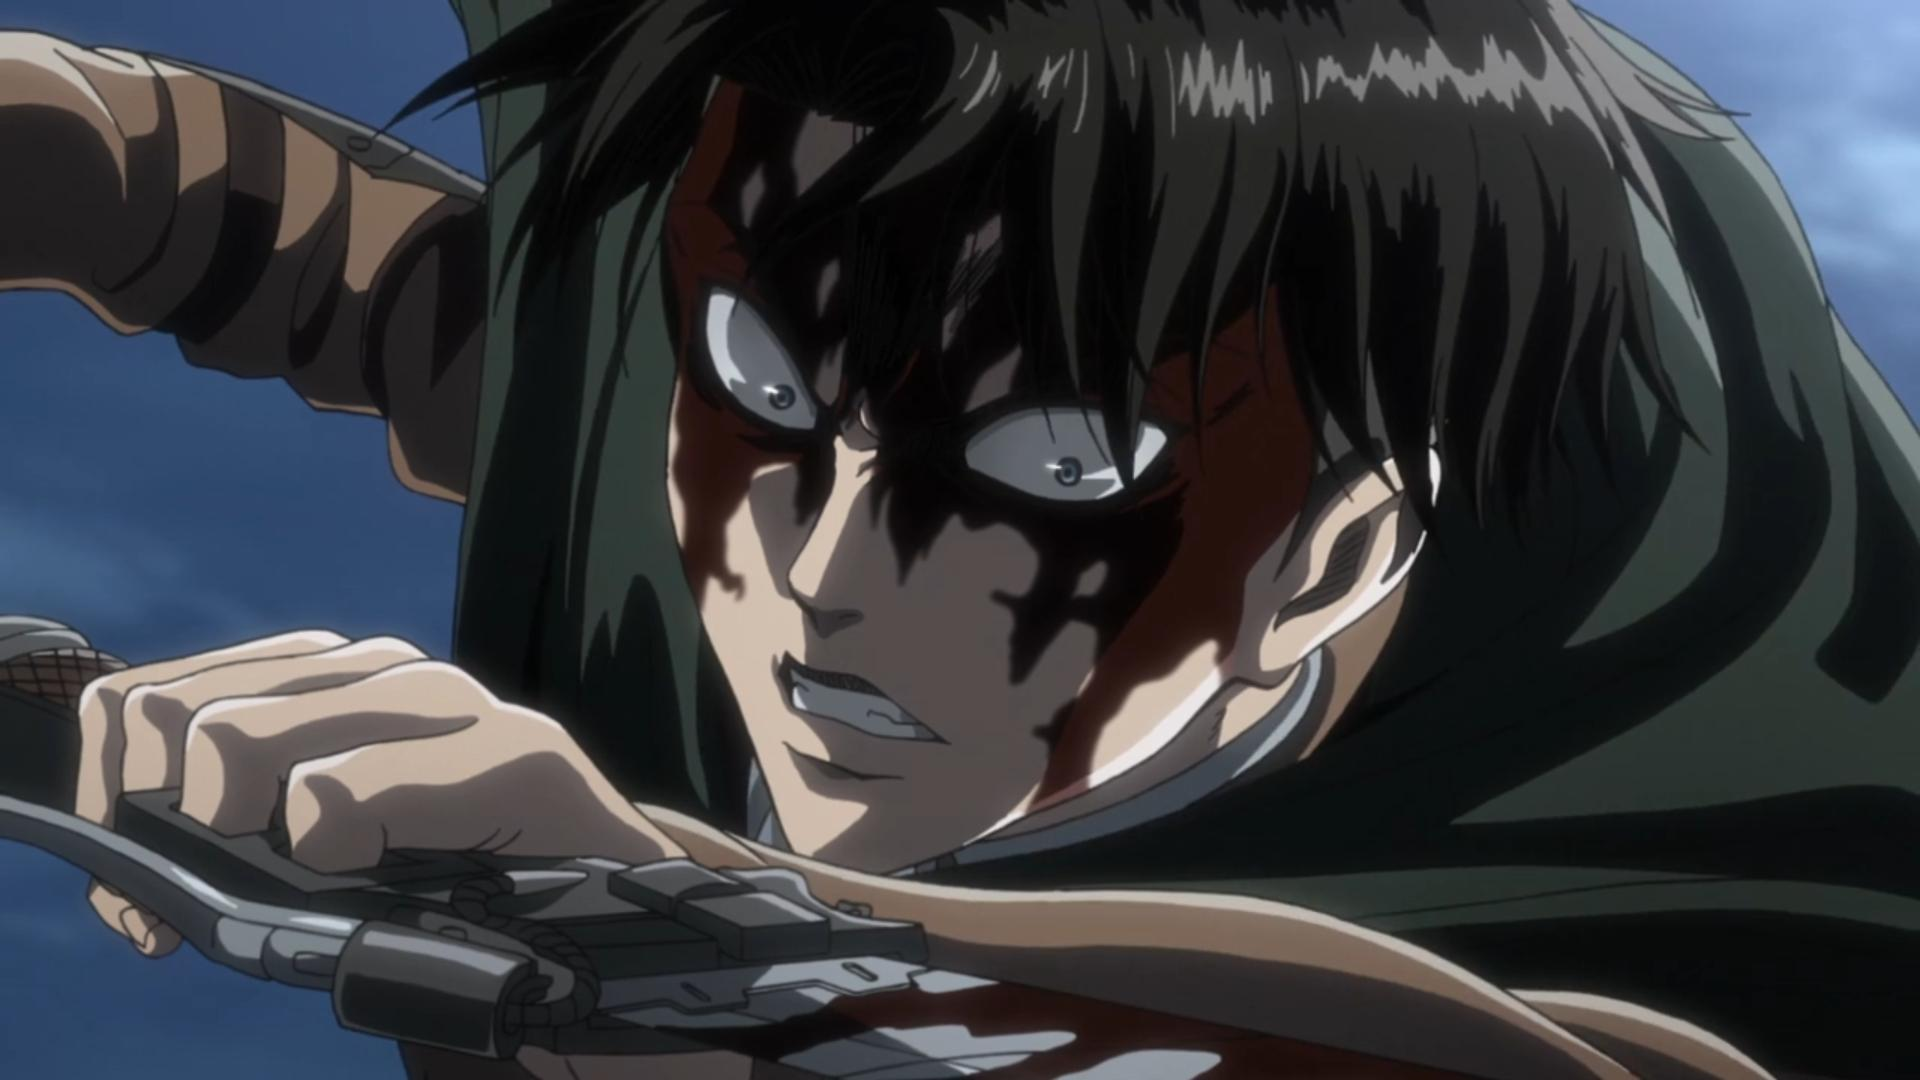 """Attack on Titan Wiki on Twitter: """"Arifumi Imai answers how long it took for  him to make the Levi vs Beast Titan scene. 1 month - Storyboard 3 months -  Draw https://t.co/QOkp94VorG…"""